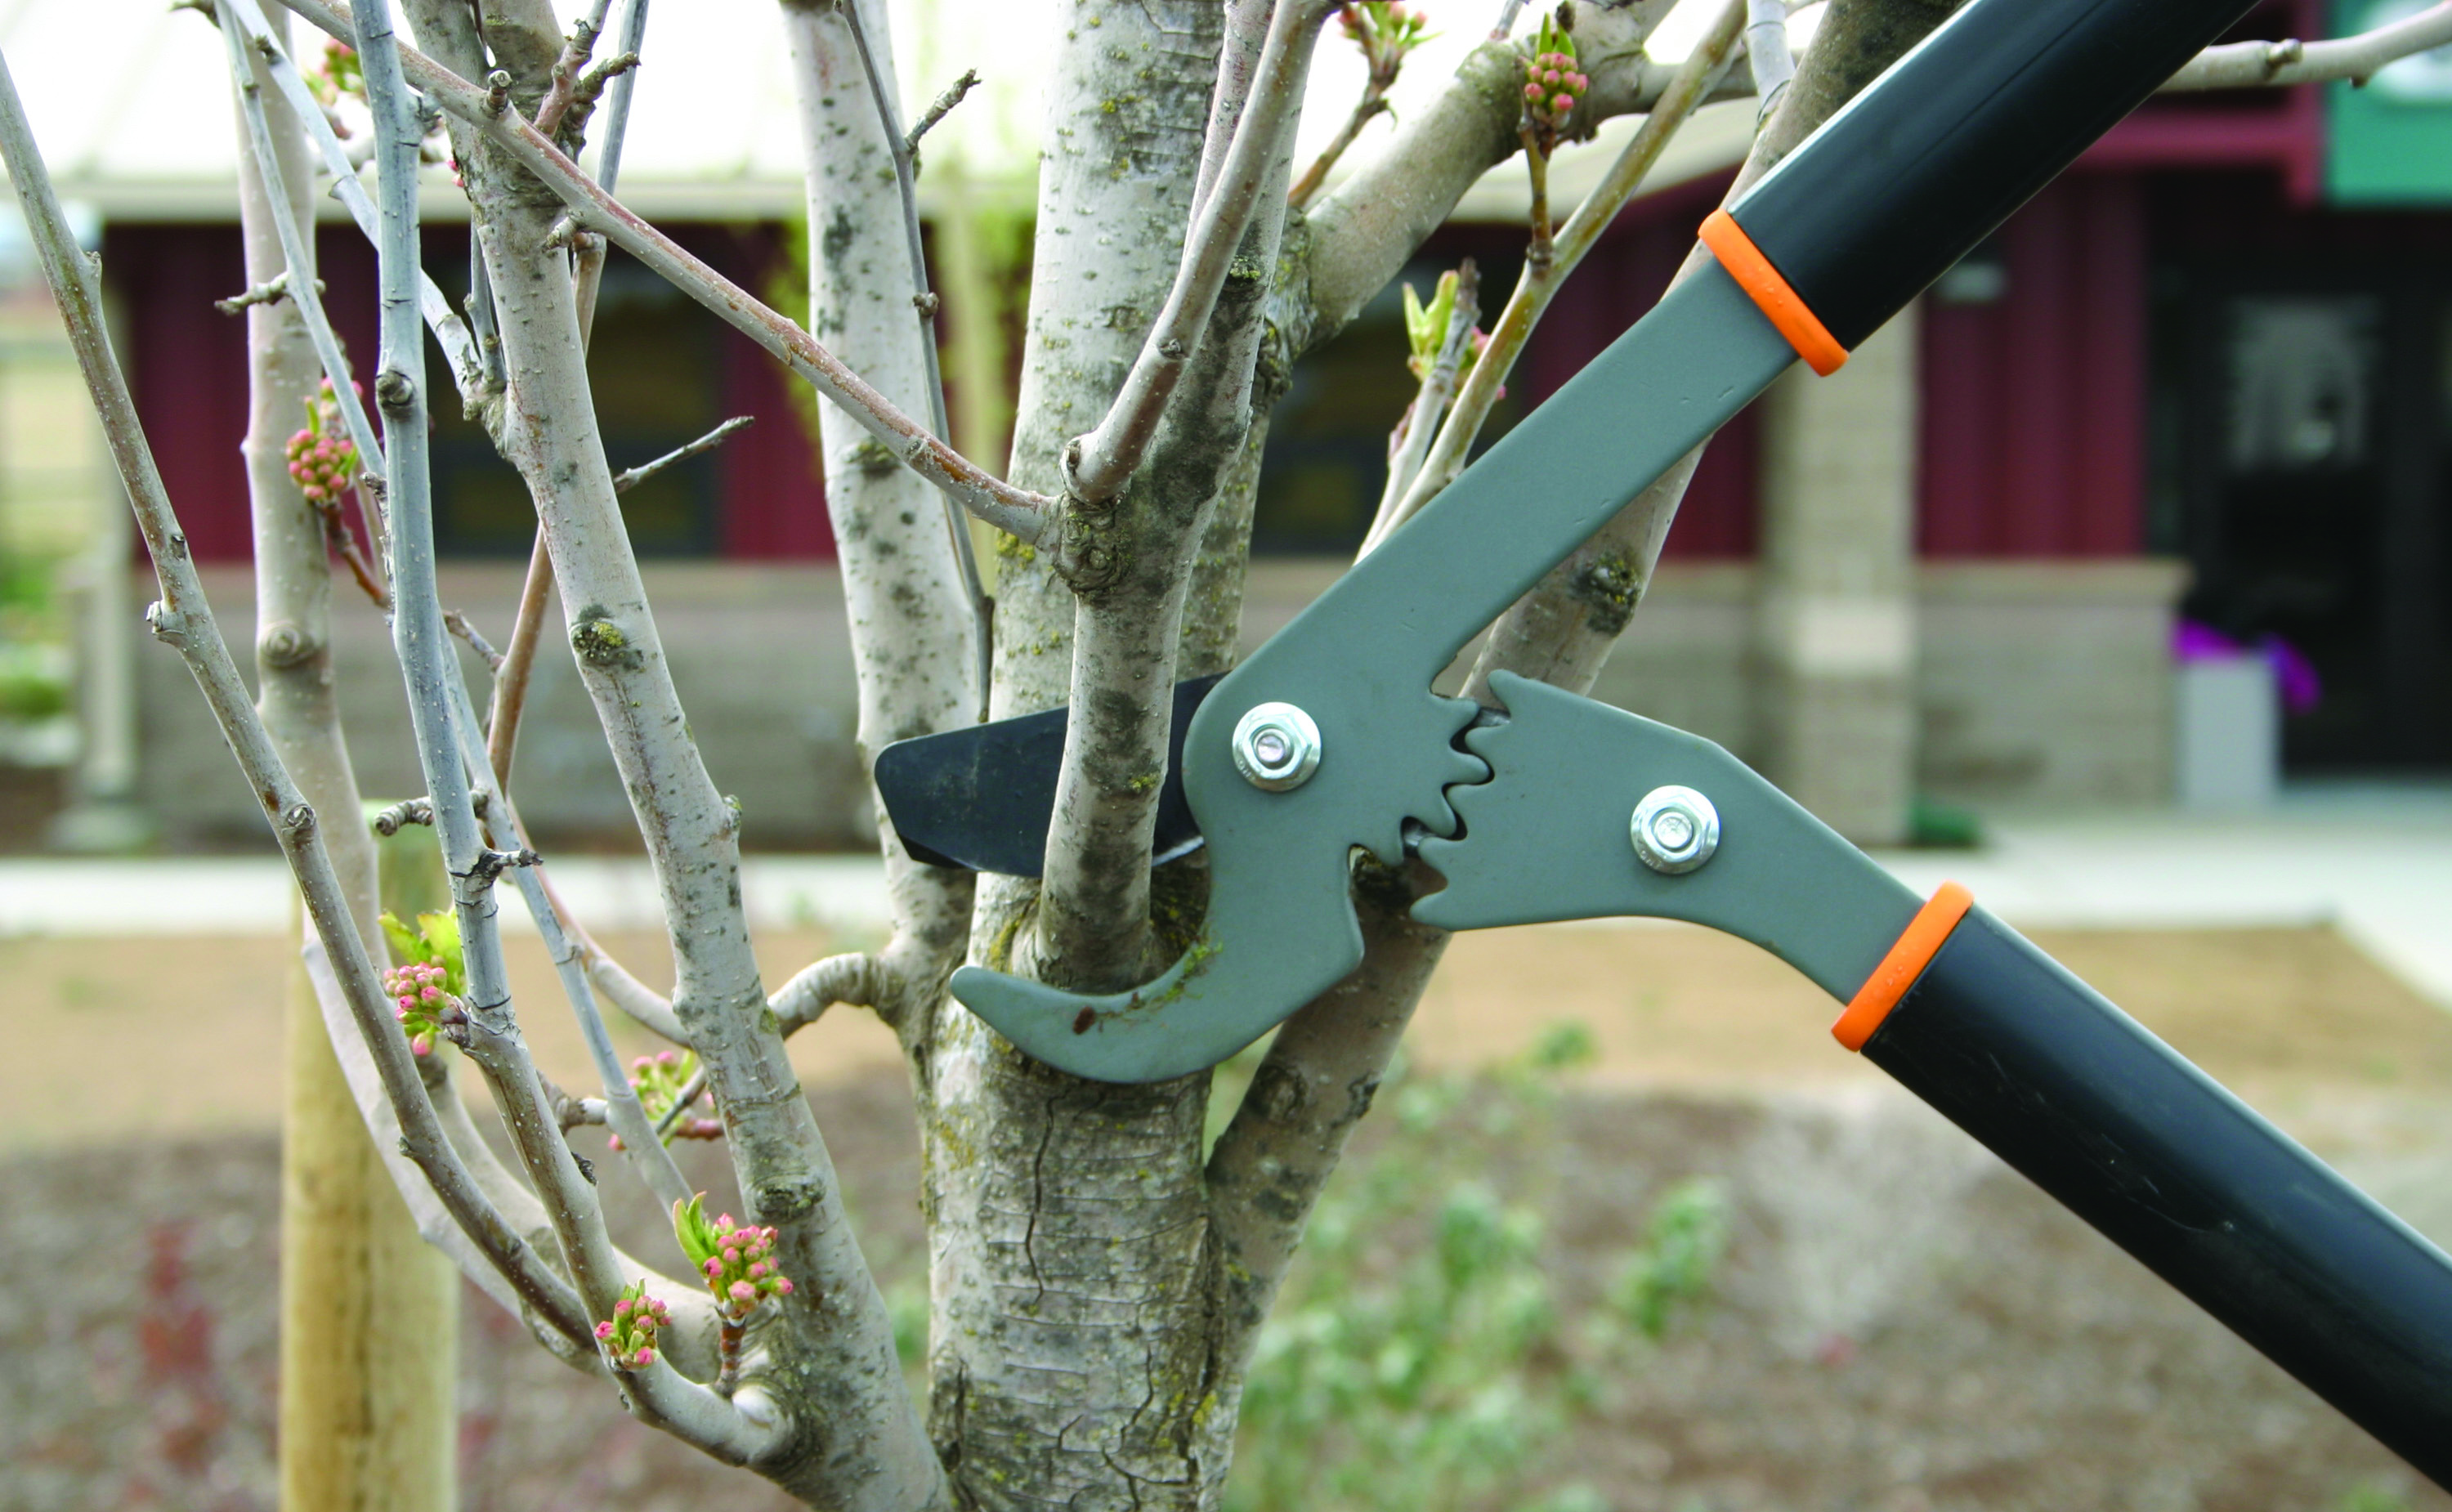 Figure 10. Pruning lopers